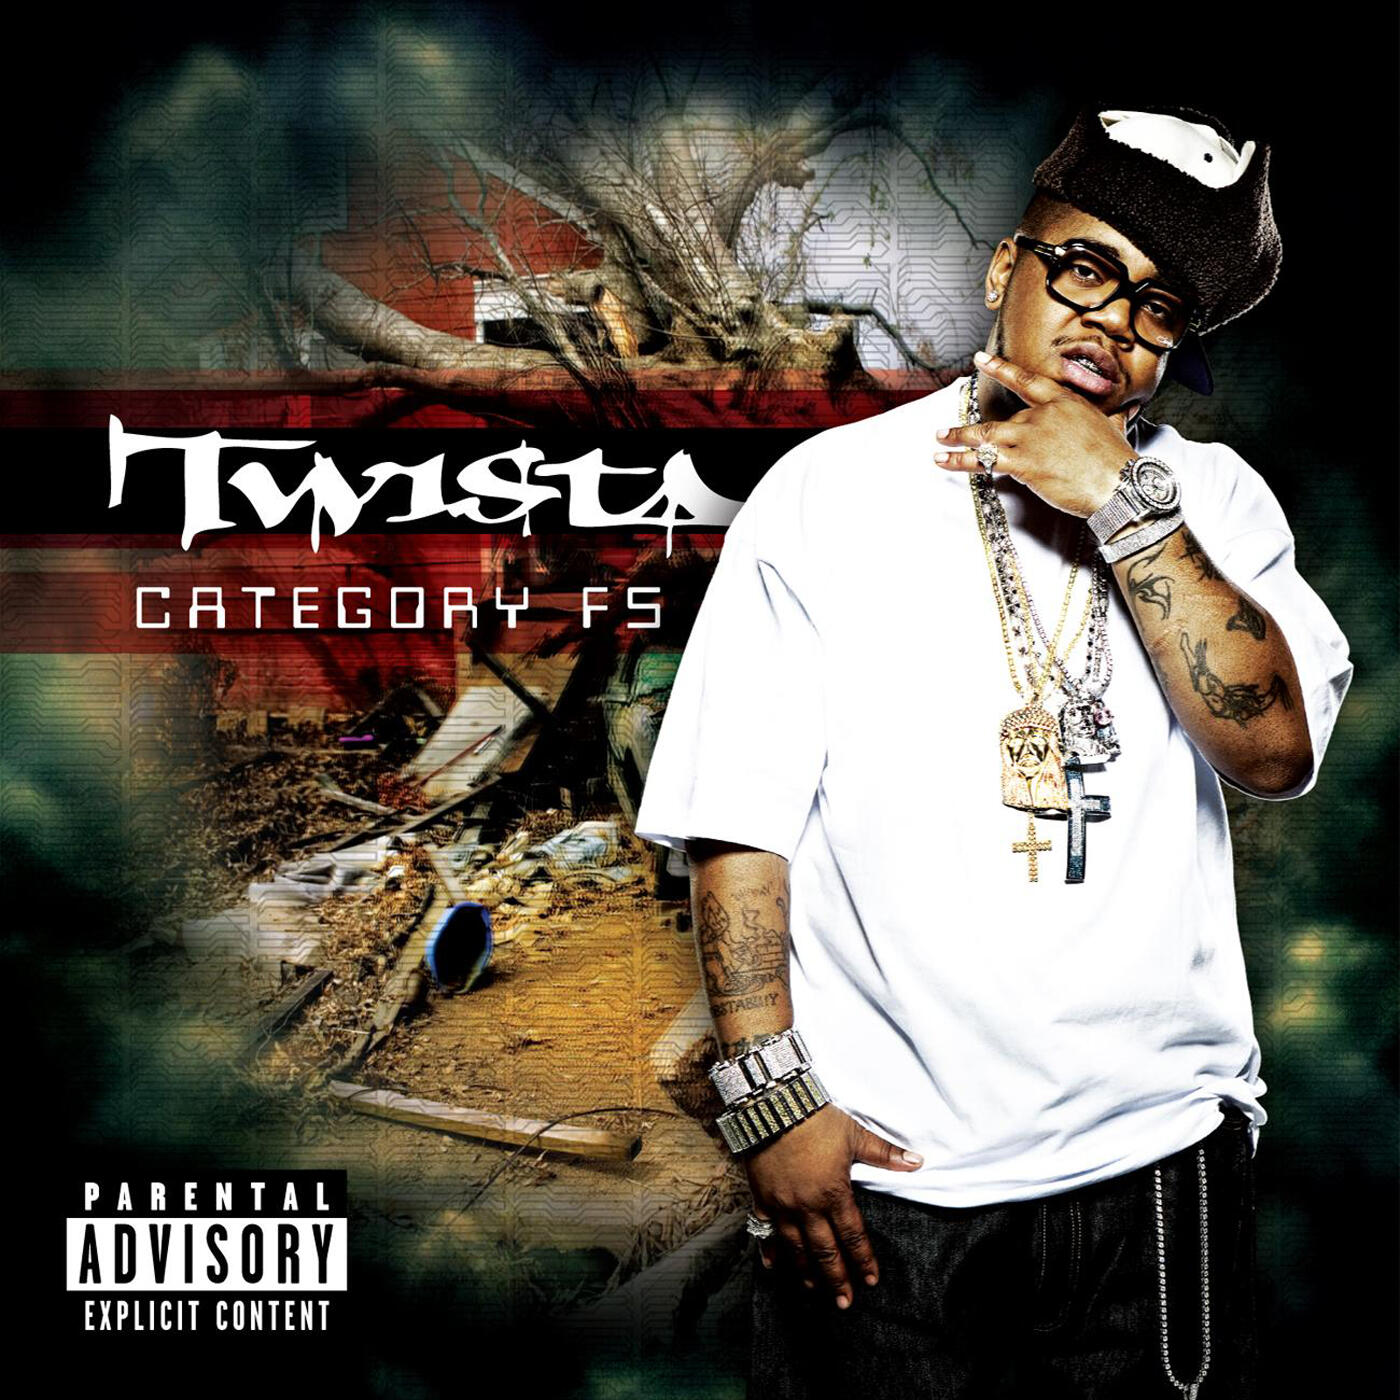 Twista/Erika Shevon Radio: Listen to Free Music & Get The Latest Info